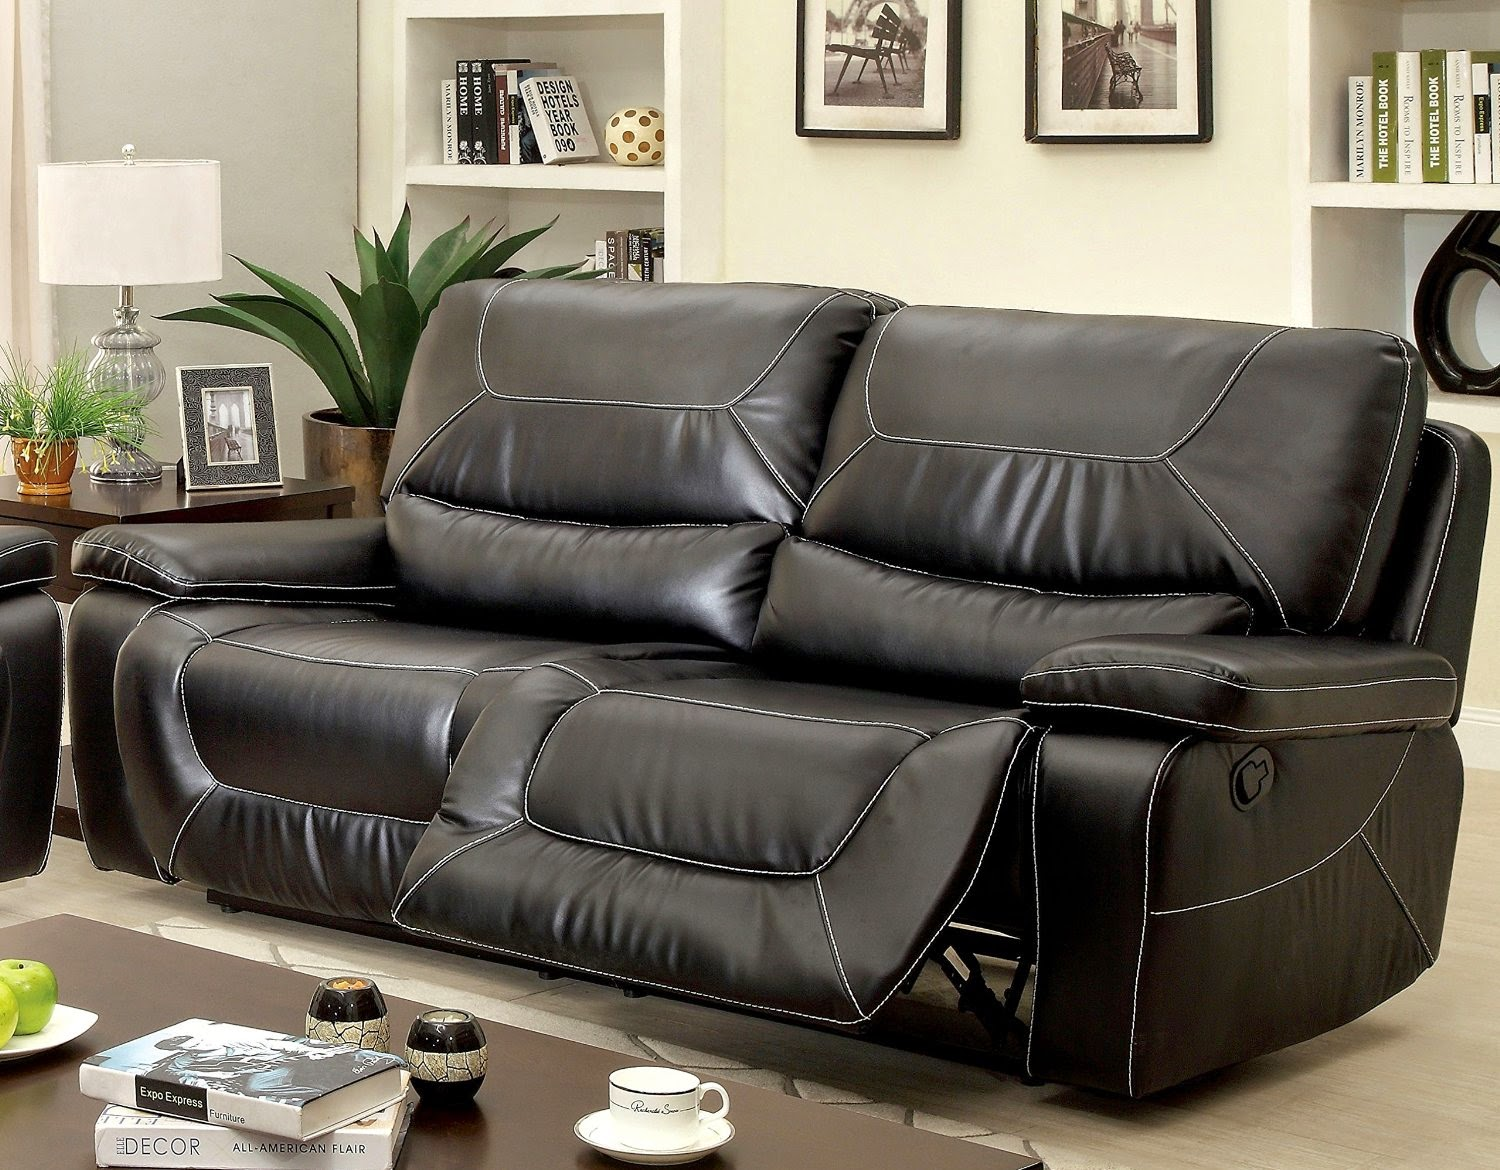 Recliner 2 Seater Sofas Leather How To Get Rid Of Old Sofa Bed Reviews Black